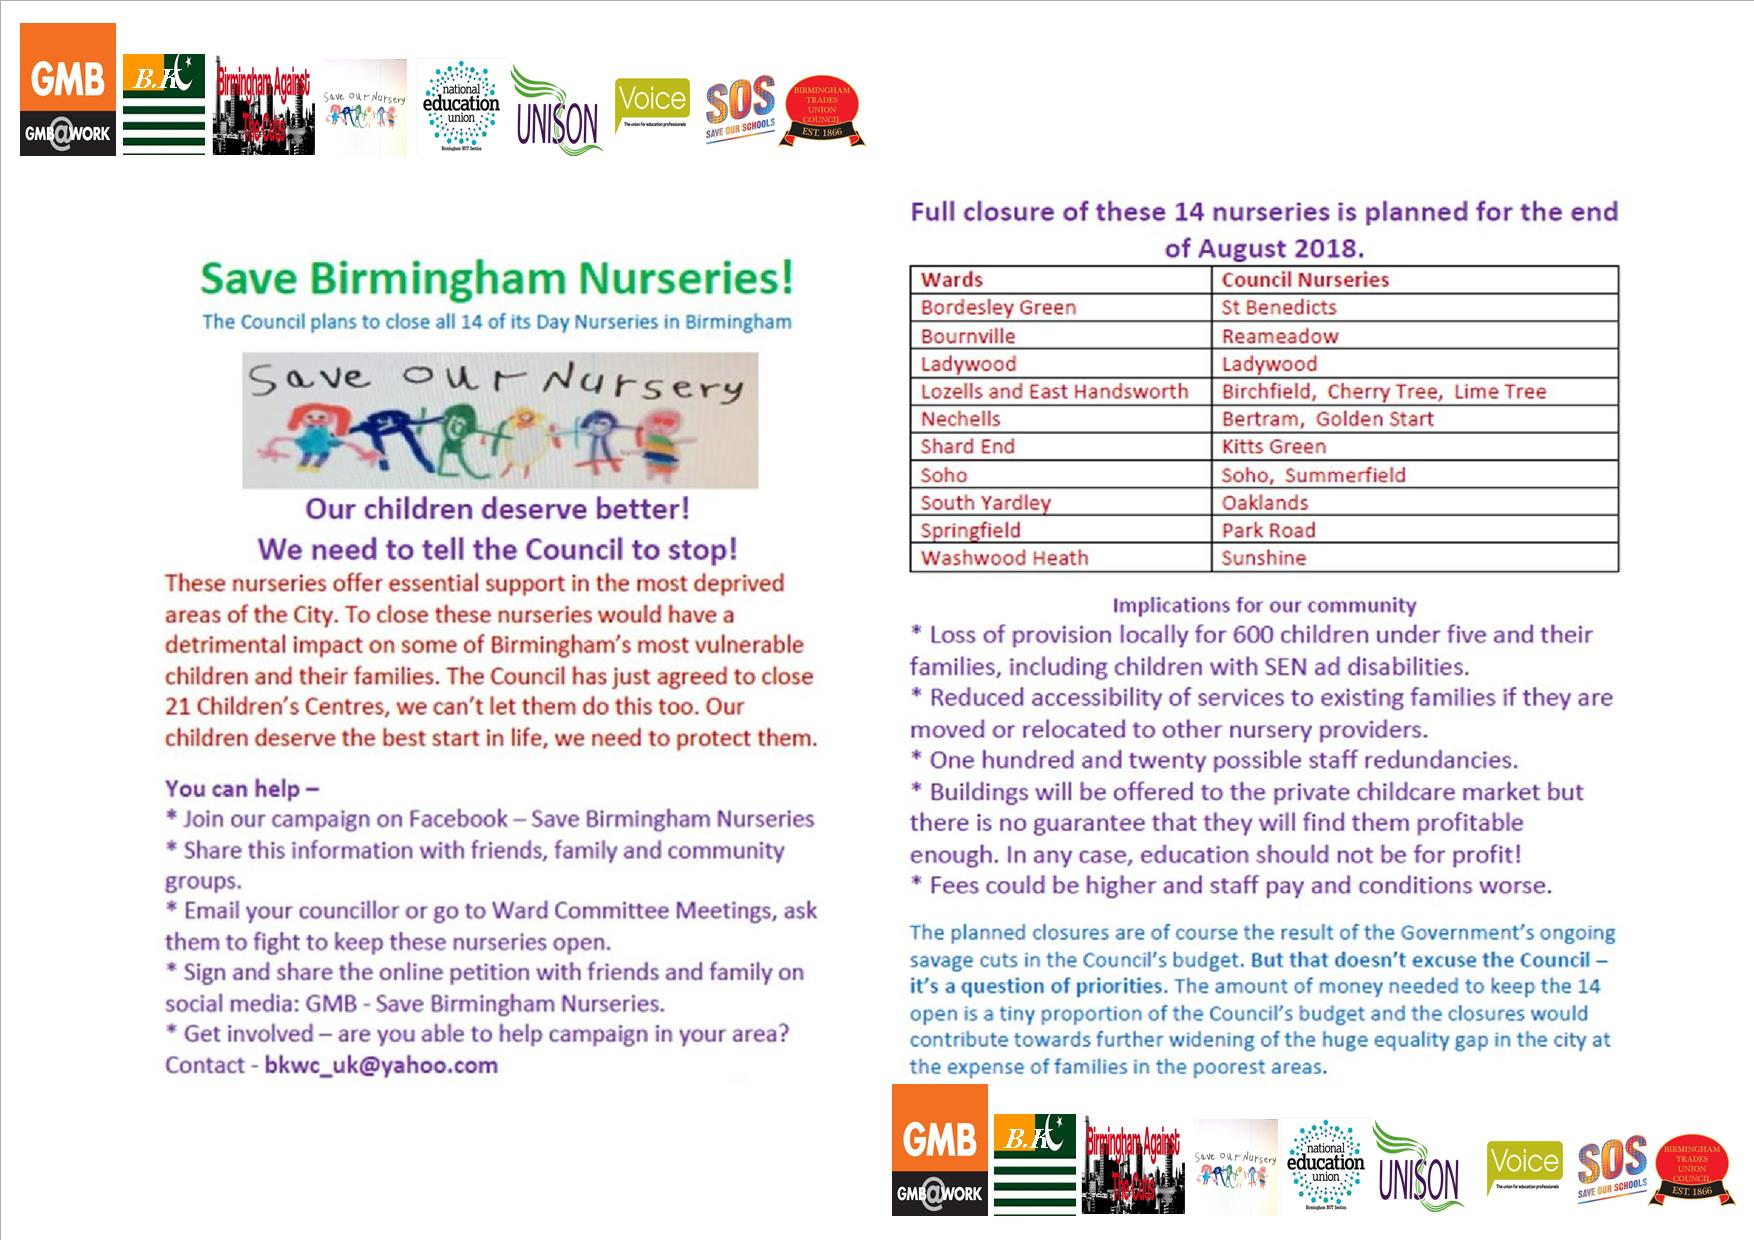 Save Our Nurseries Campaign To Lobby The Council Meeting On Tuesday March 13 From 1pm Birmingham Nut Section National Education Union